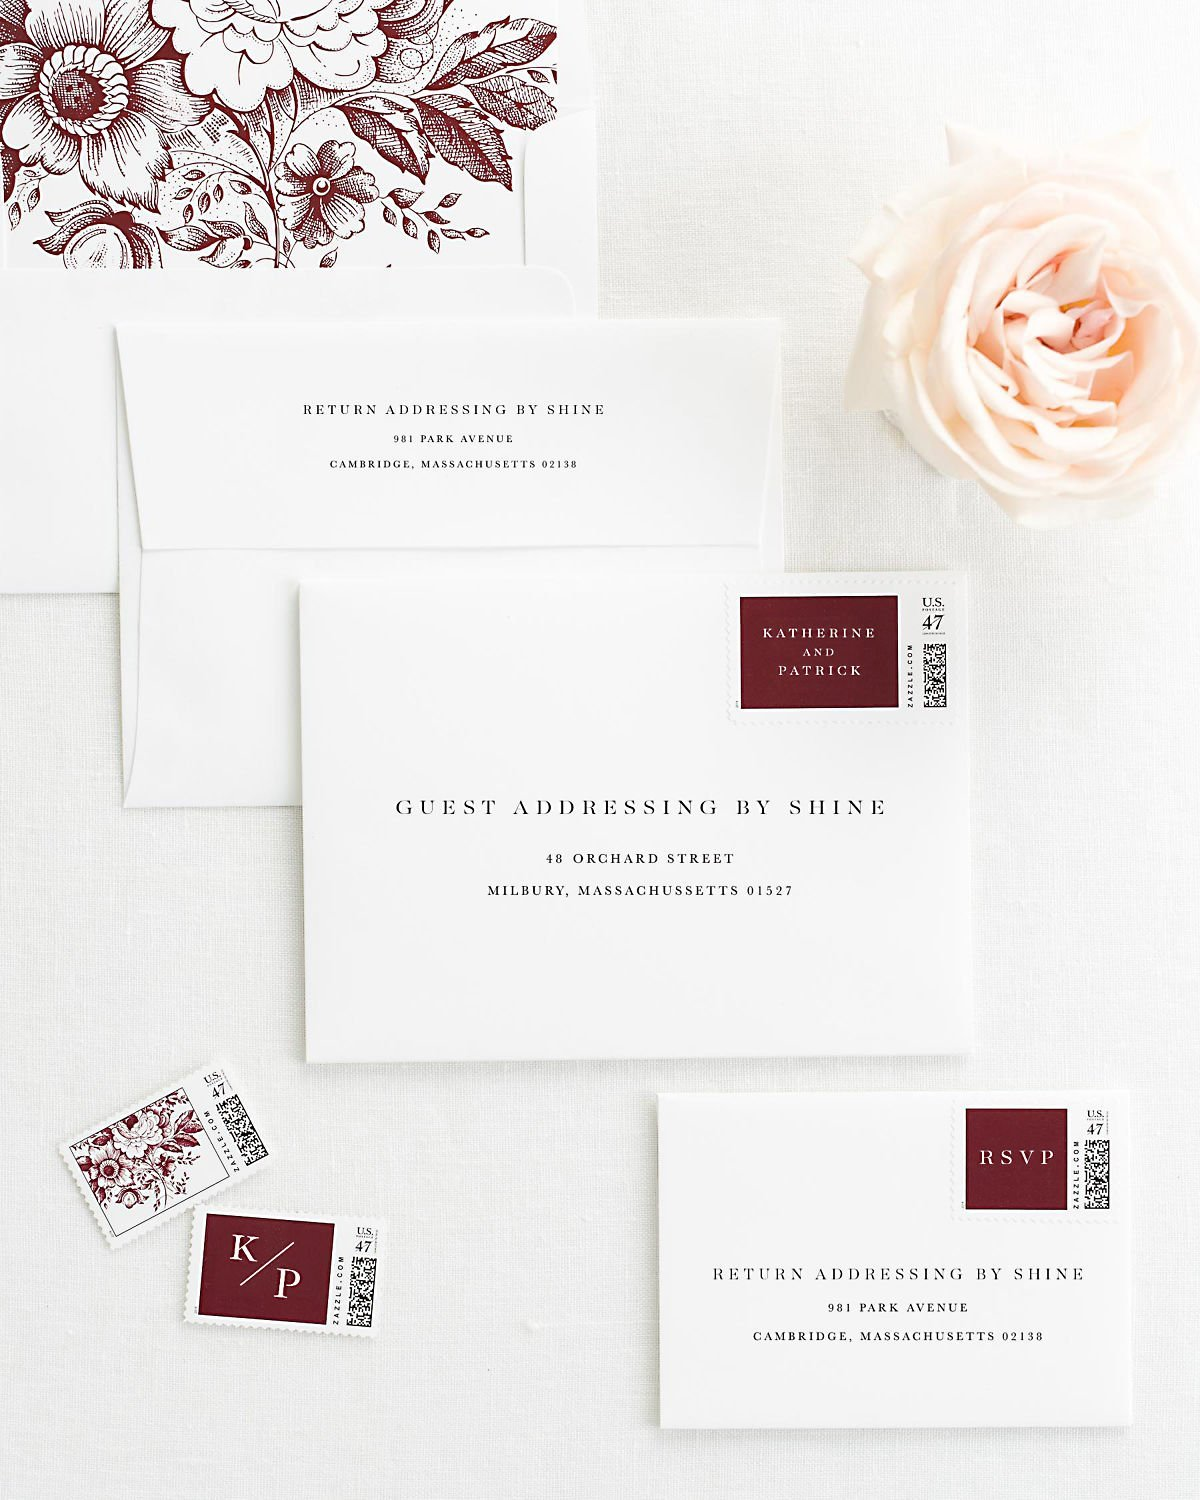 Wedding Invitation Envelopes with Pre-Printed Addresses and Matching Cabernet Personalized Postage